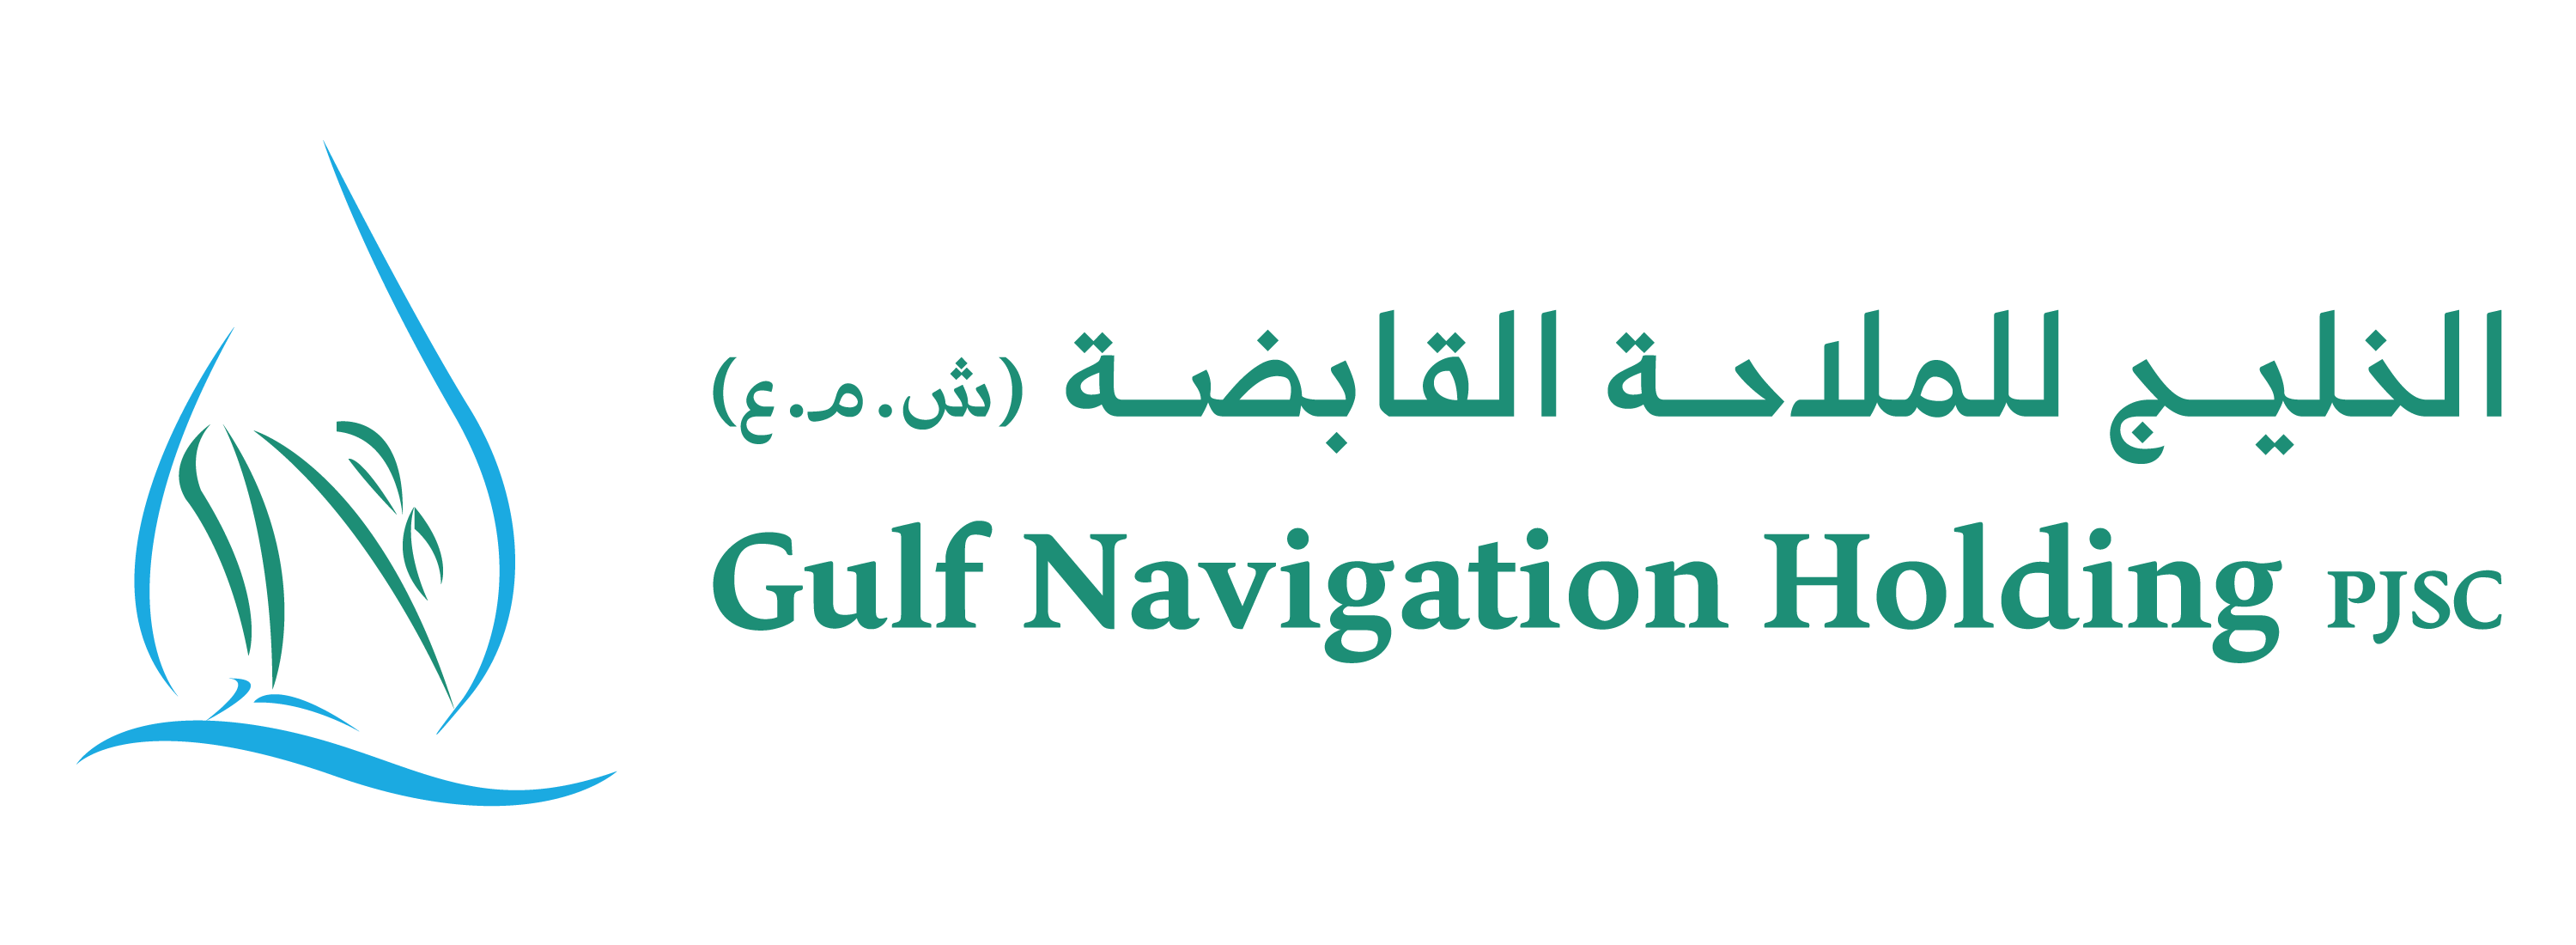 Gulf Ship Management LLC - Gulf Navigation